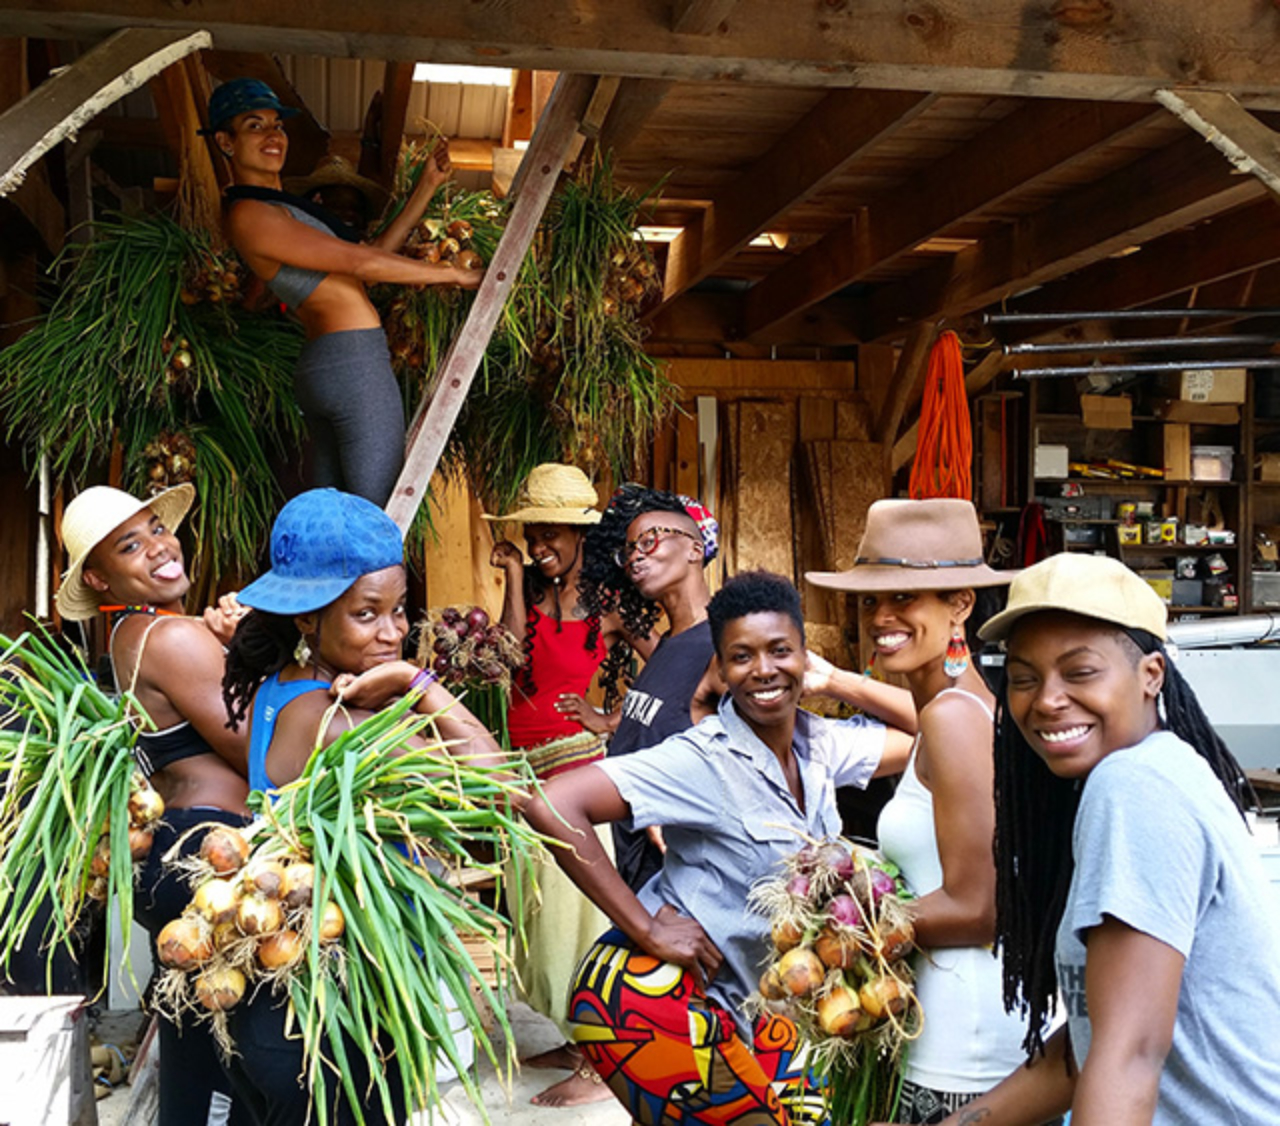 Black Latinx Farmers Immersion participants hanging onions to cure in the barn. Photo: Leah Penniman